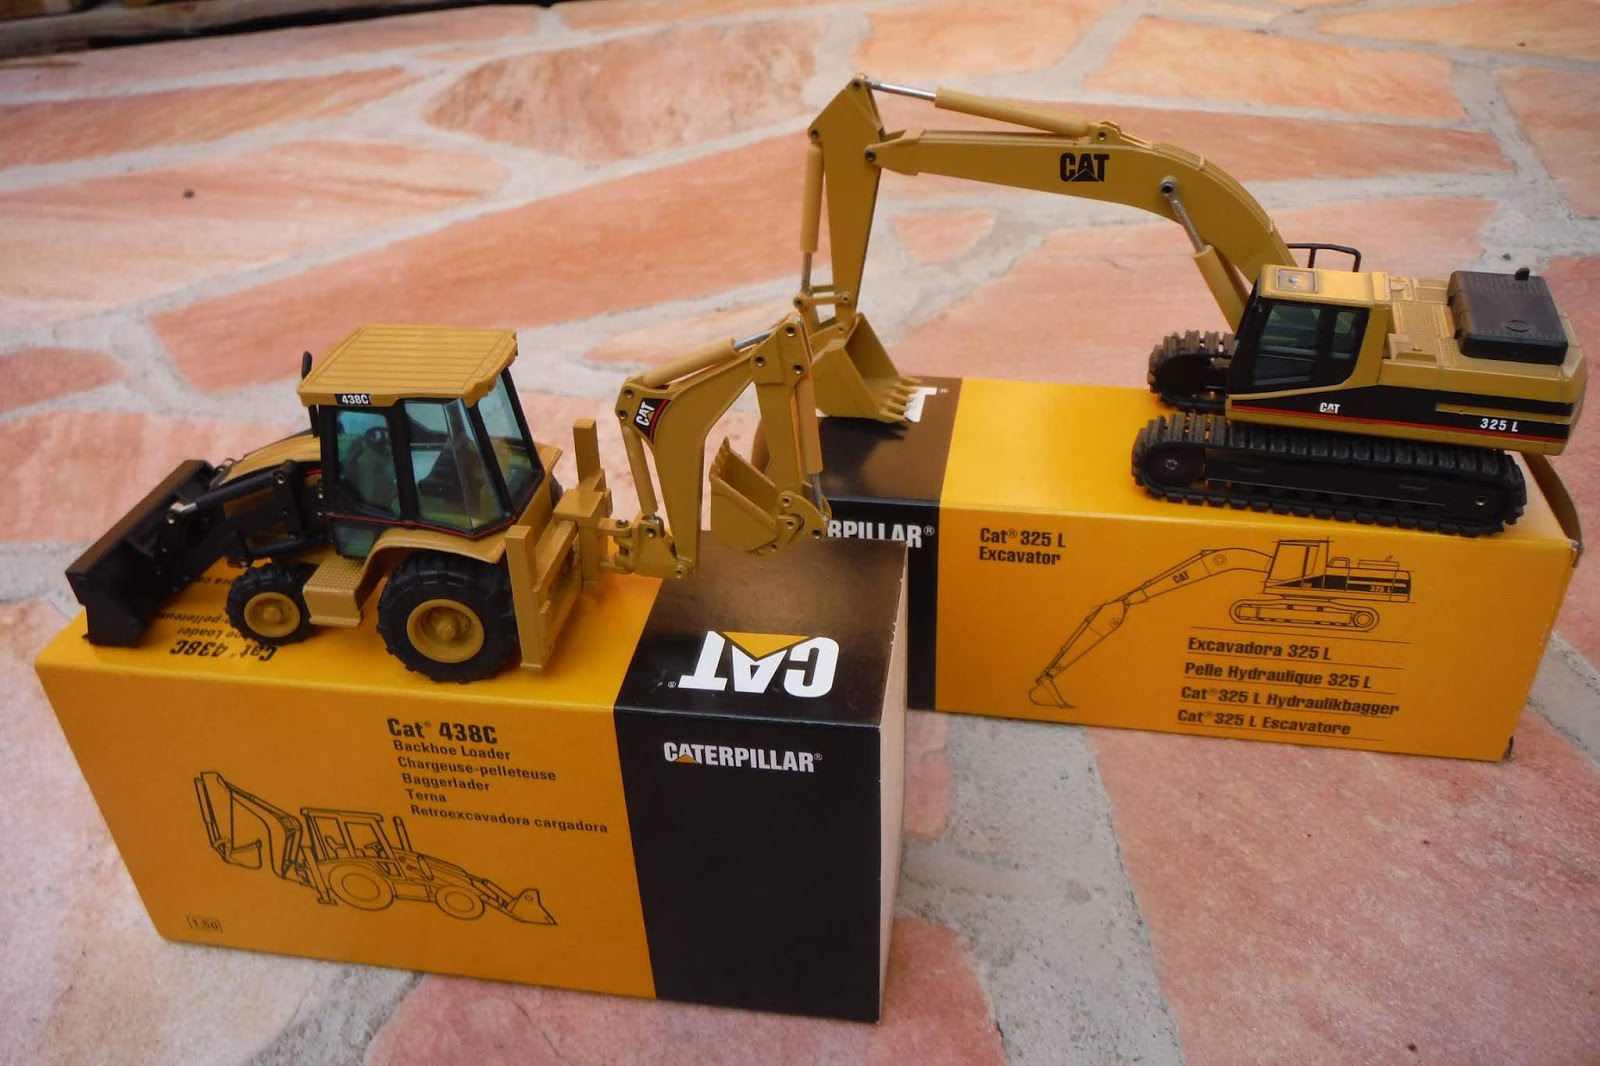 We send it to any place in the world and we would publish the winners on our blog there is a caterpillar 438c and a cat 325l